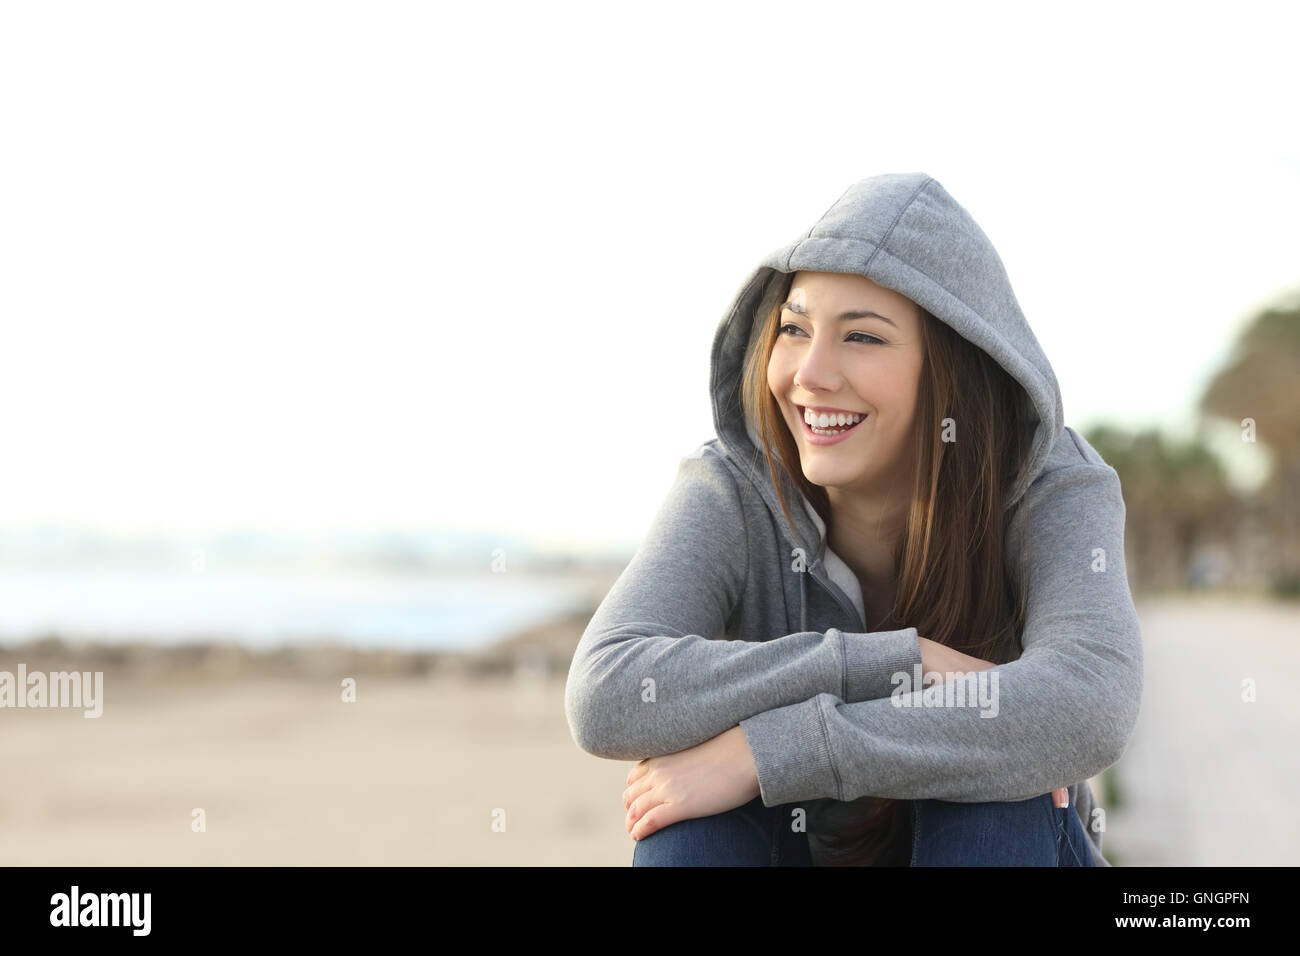 Portrait of a happy teenager girl smiling and looking at side outside on the beach - Stock Image